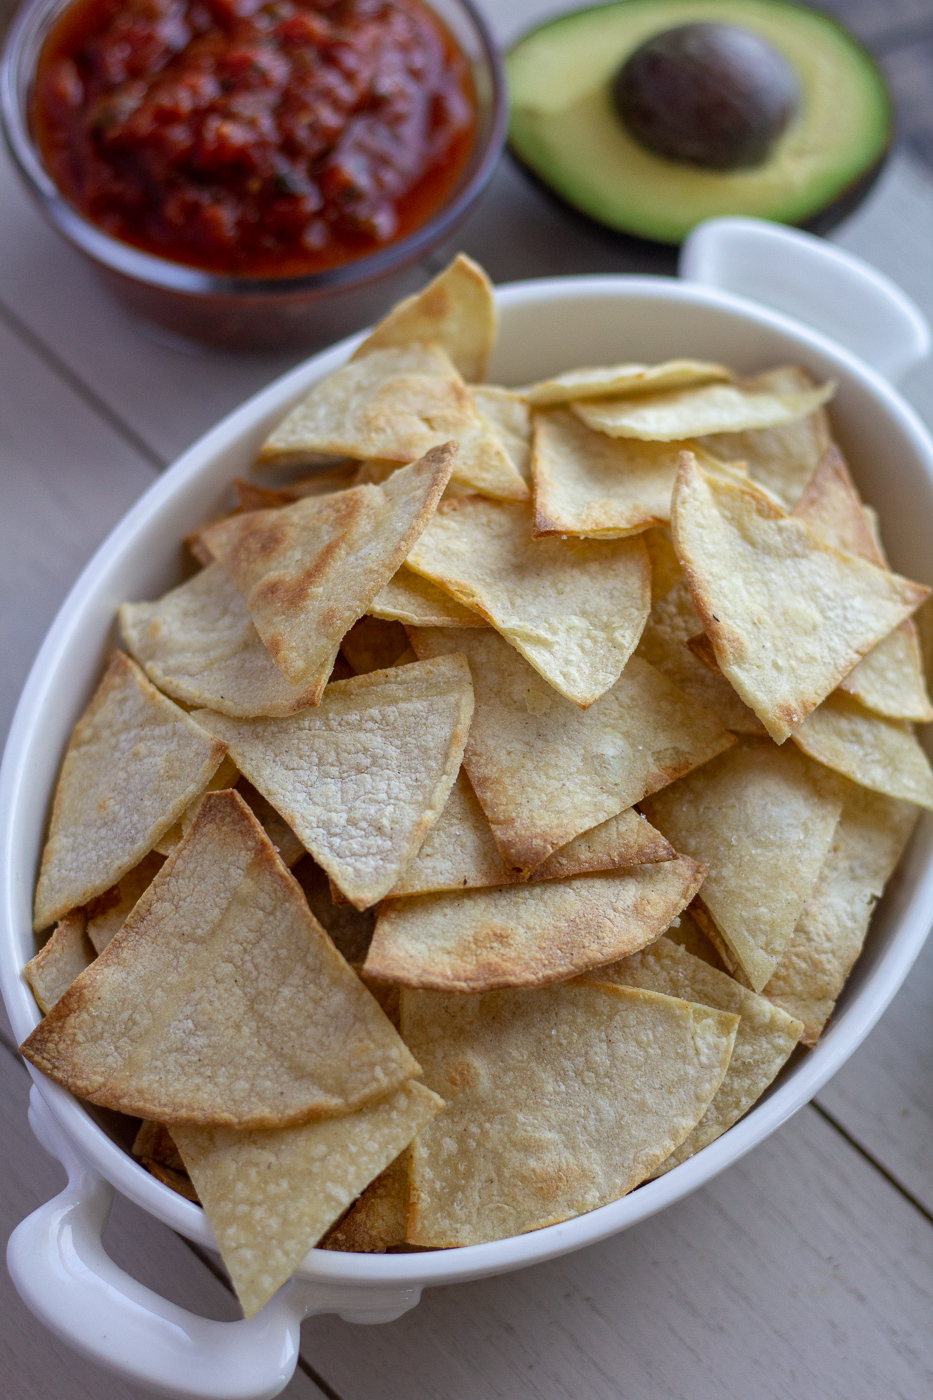 Avocado Oil Baked Tortilla Chips